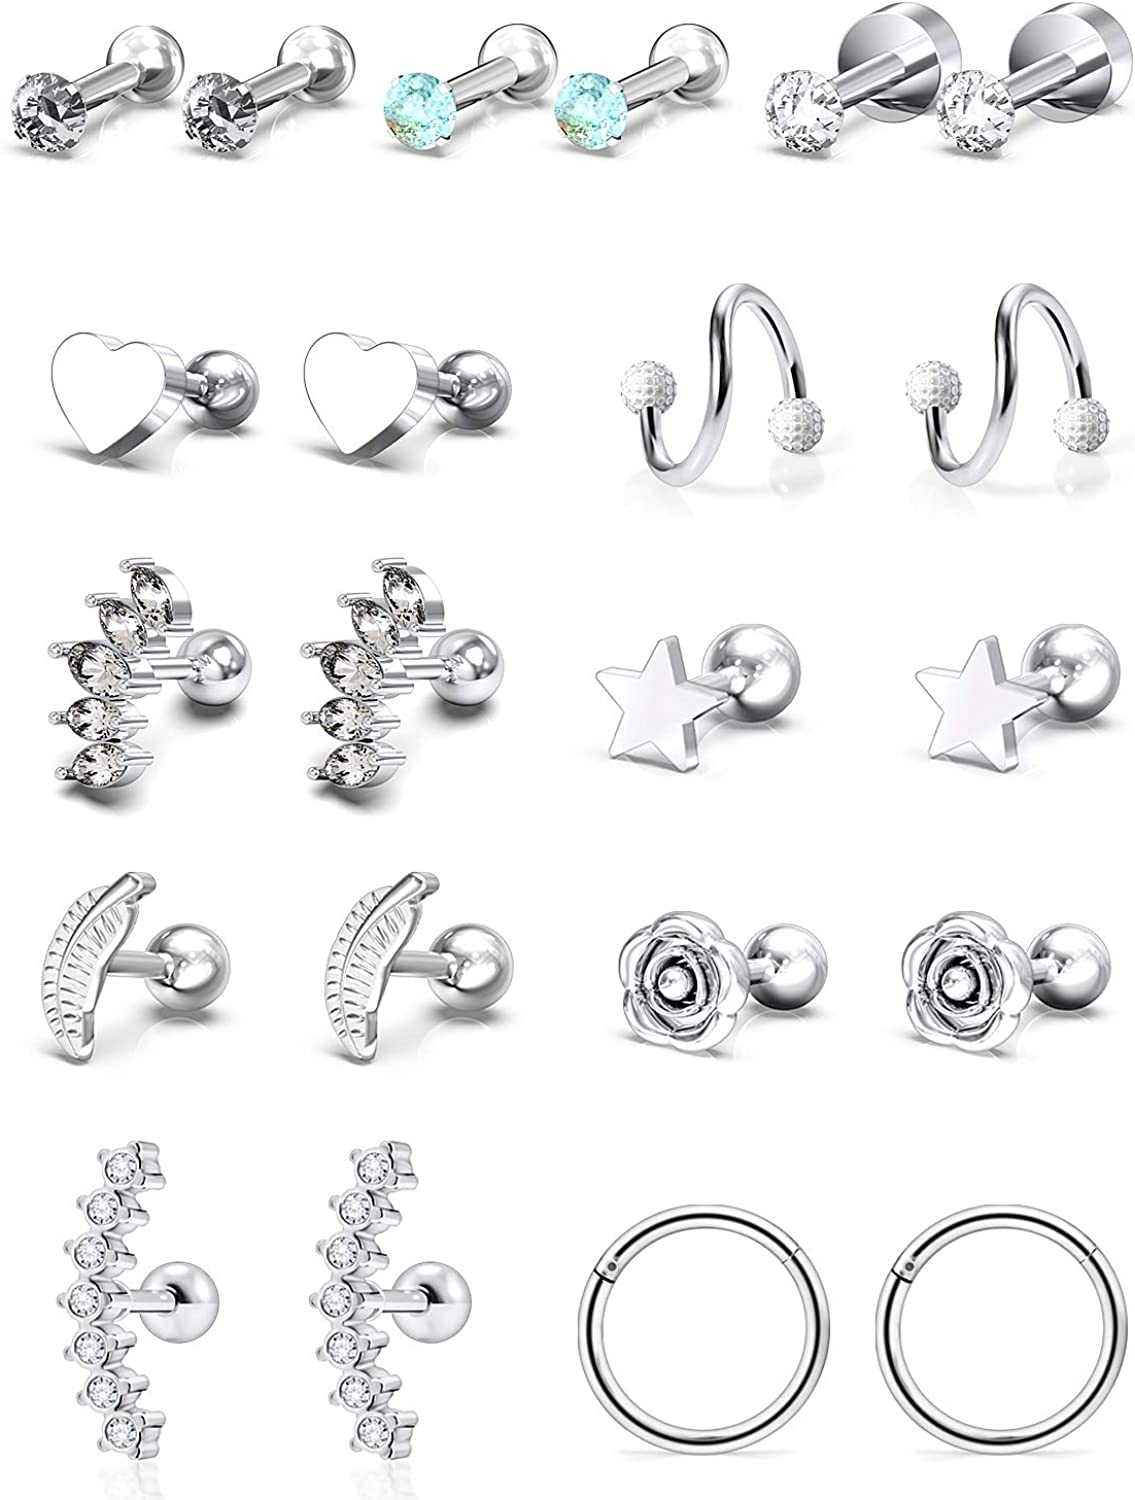 Yaalozei 3Pairs 18G 316L Stainless Steel Stud Earrings for Women Cartiliage Earring Tragus Helix Piercing Created-Opal 3MM